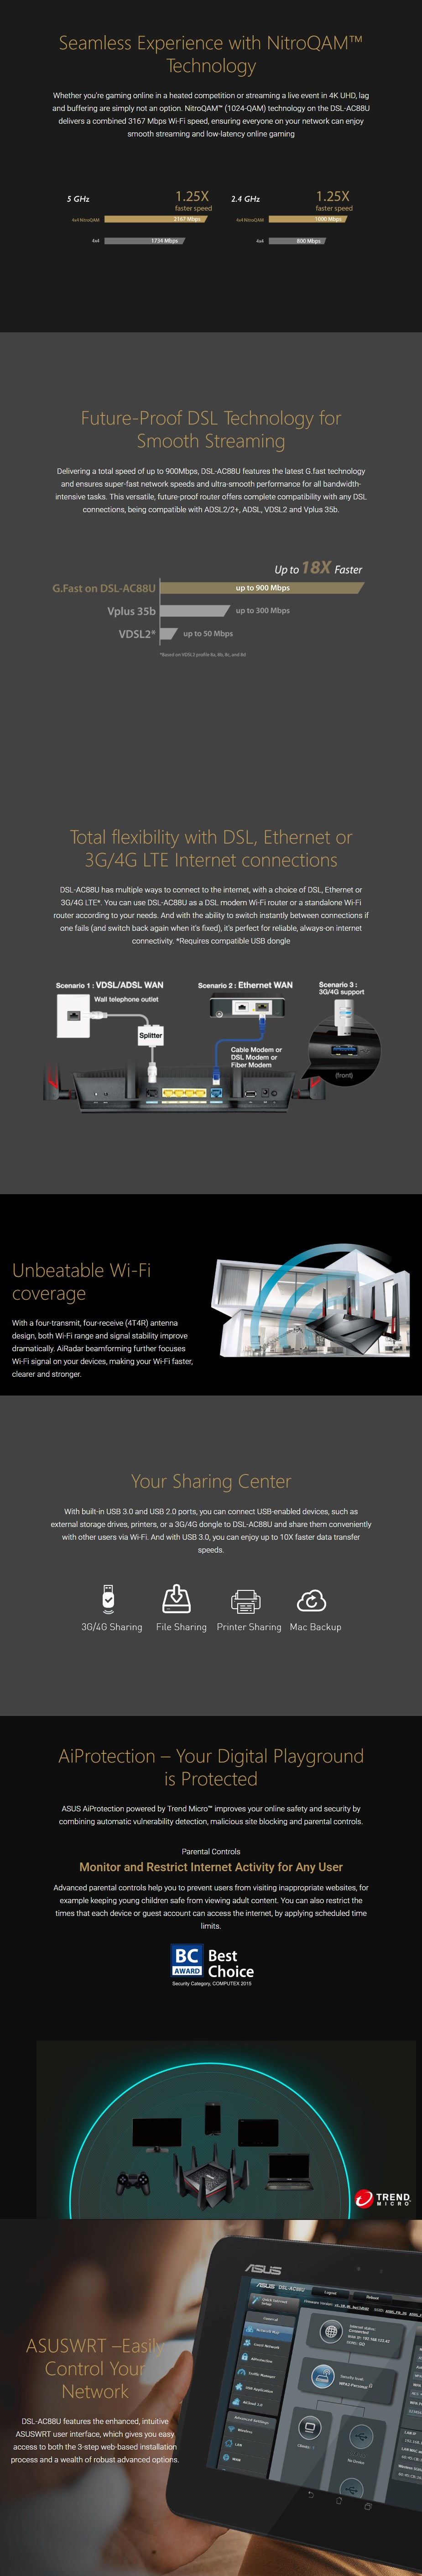 A large marketing image providing additional information about the product ASUS DSL-AC88U 802.11ac Dual-Band Wireless-AC3100 Gigabit ADSL/VDSL Modem Router - Additional alt info not provided